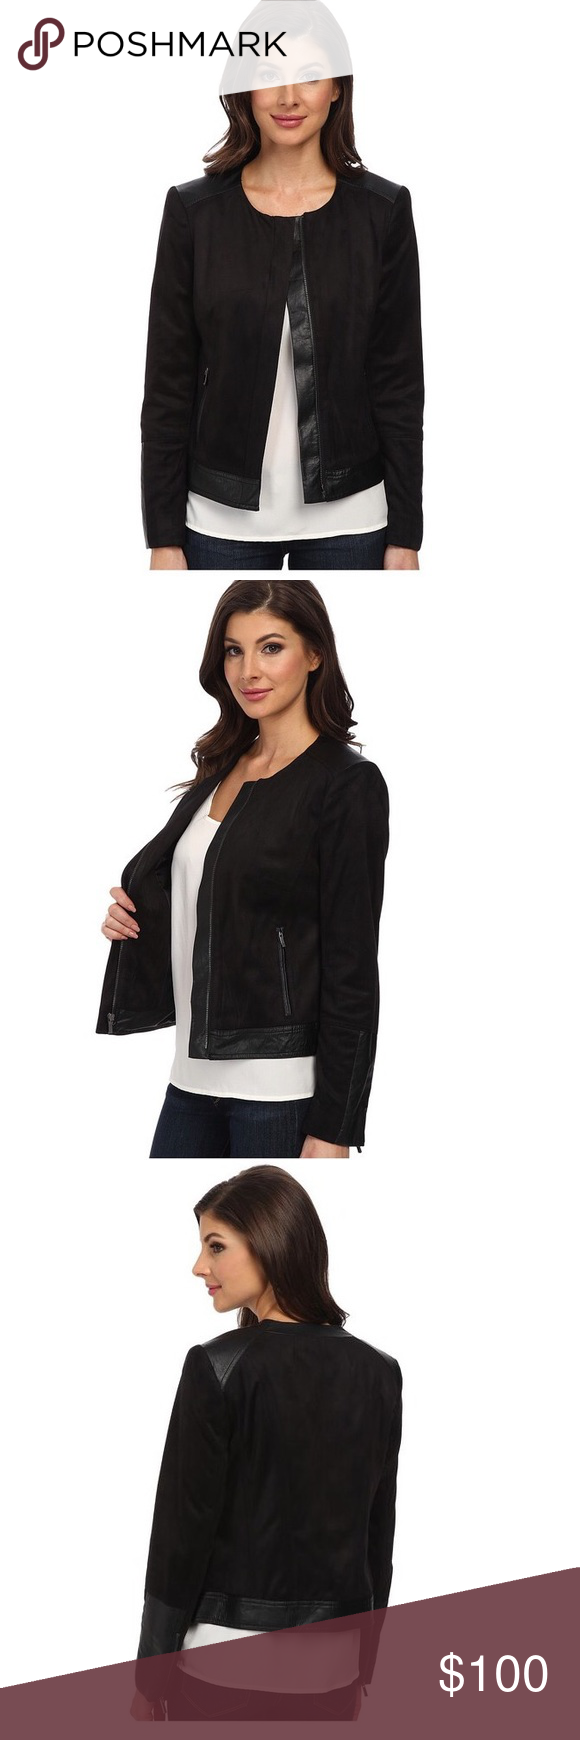 """💥24hr Sale💥 Black Faux Suede Motorcycle Jacket - **Reasonable Offers Welcome - No Trades** -14W Bust: 47"""" - Waist: 37""""- 100% Polyester; Faux Leather: 100% Viscose - Imported - Dry Clean Only - Fully lined - Long sleeve Jones New York Jackets & Coats"""